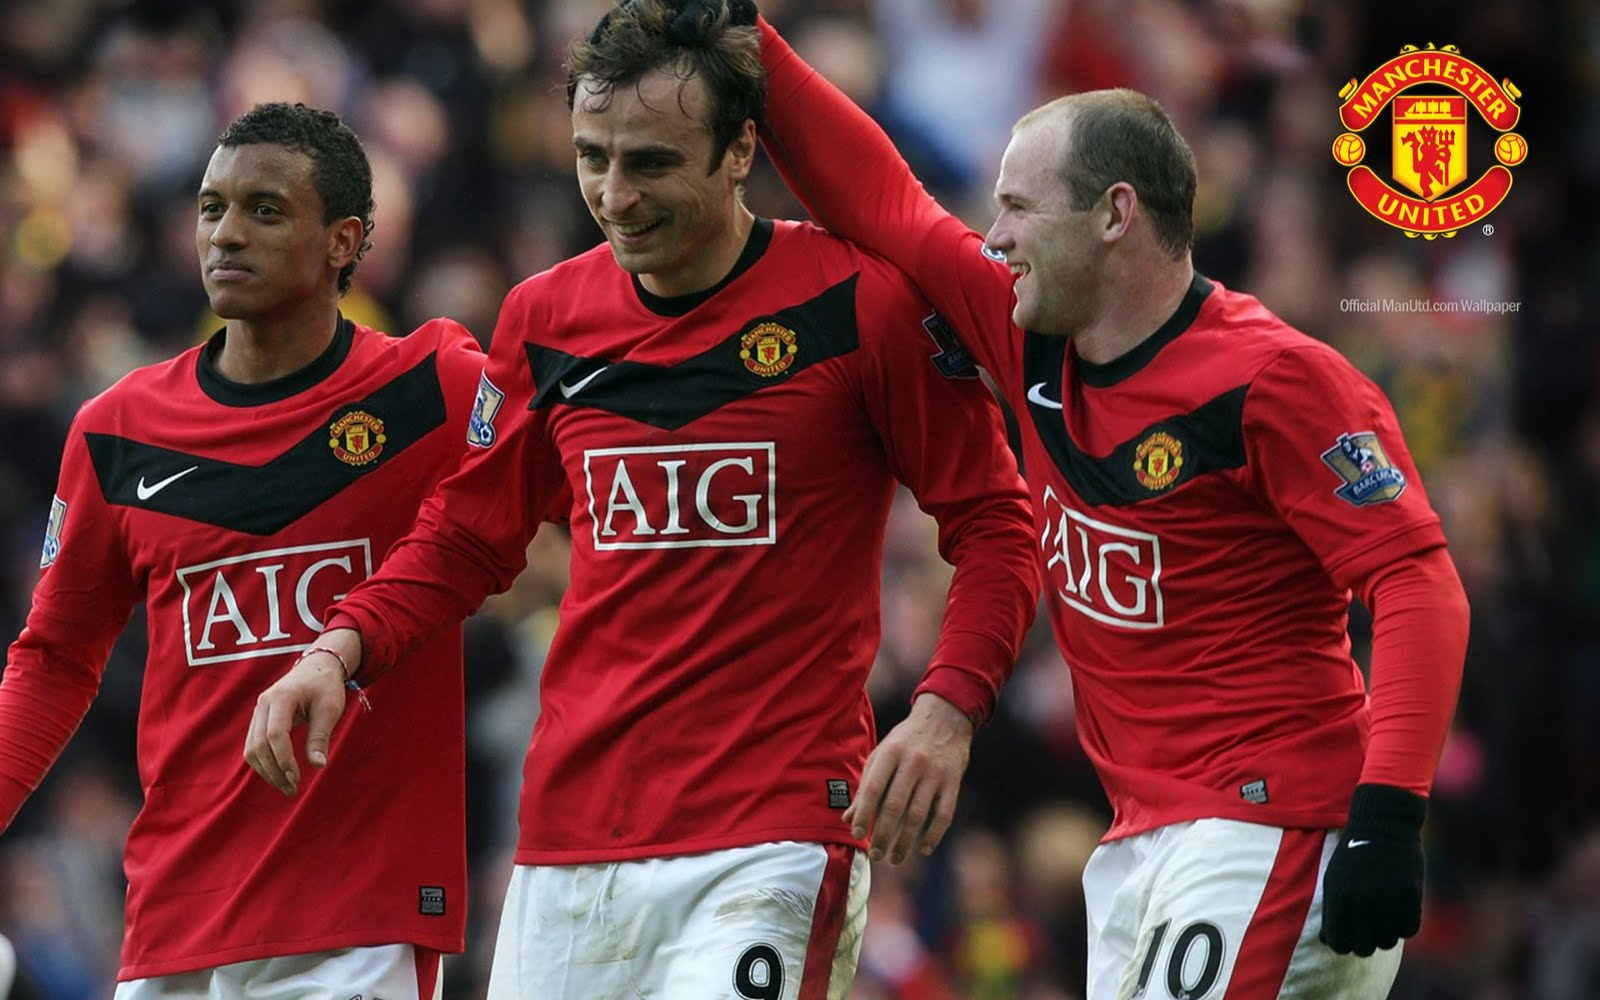 MANCHESTER UNITED FC 03 29 10